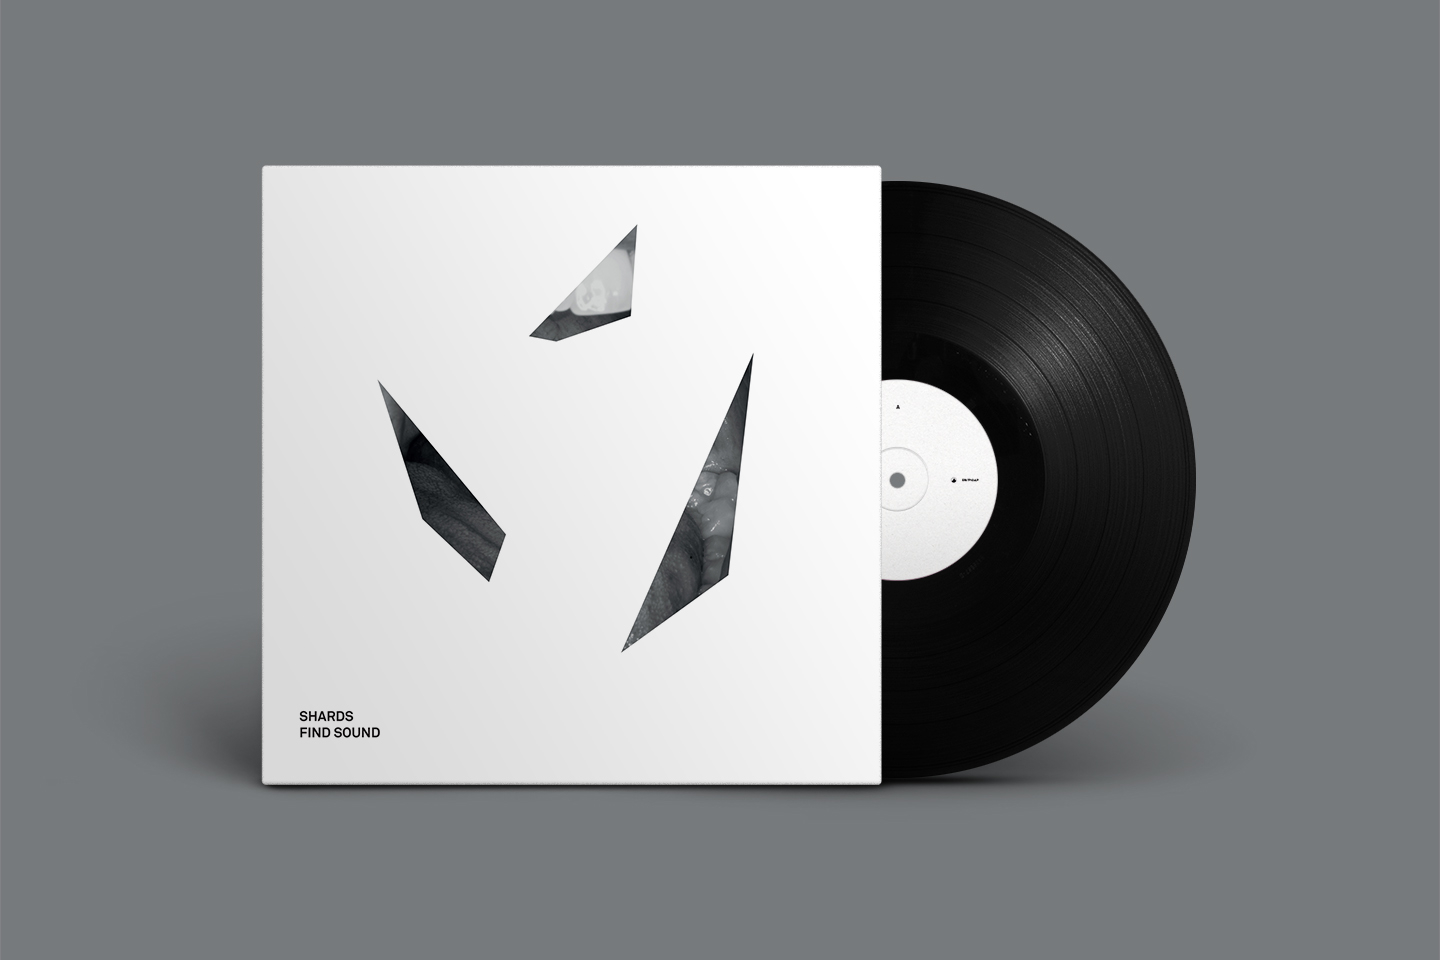 Find Sound by Shards - Releases - Erased Tapes